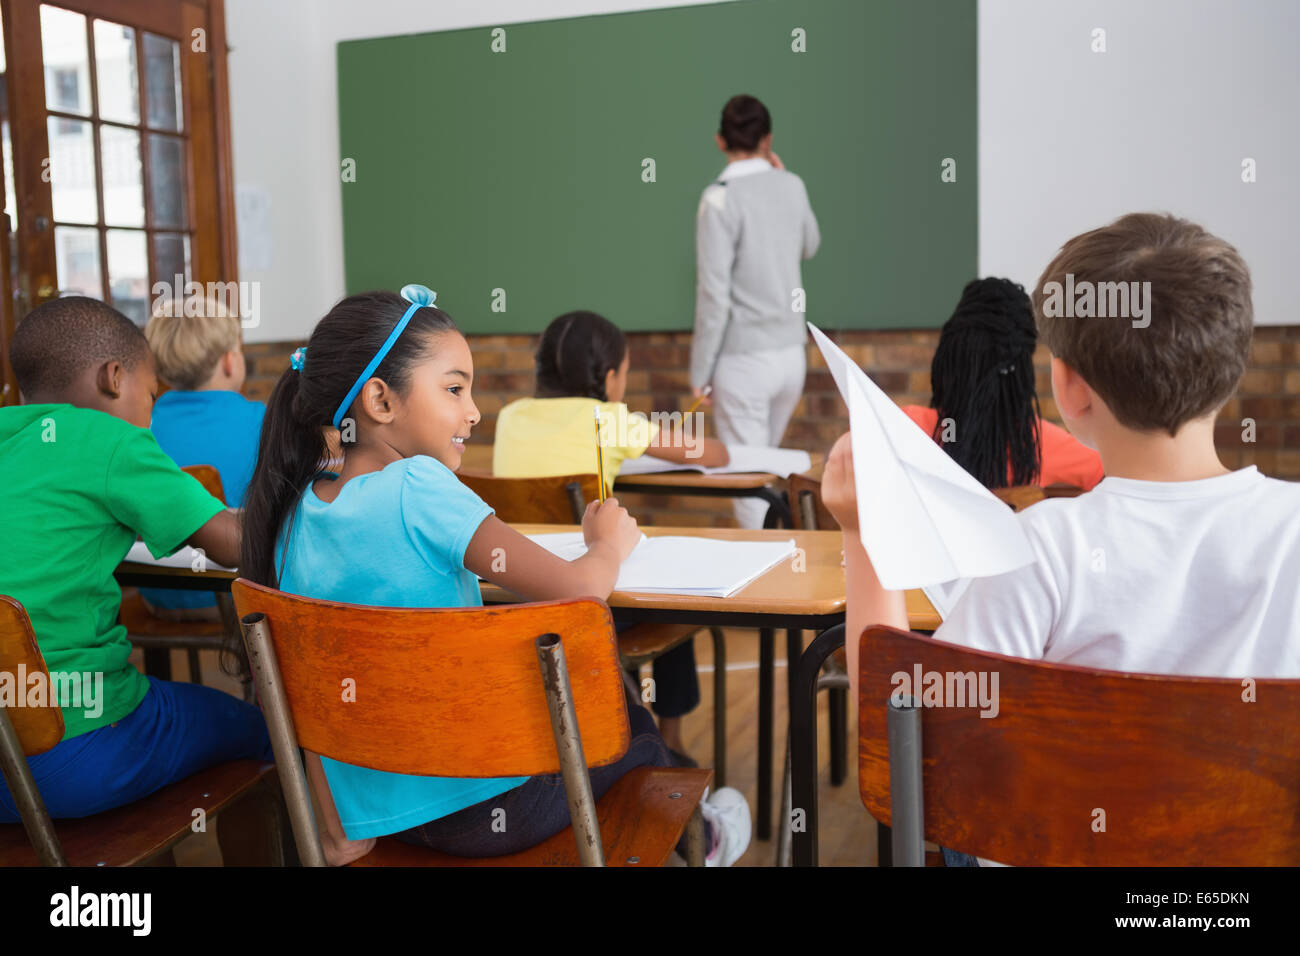 Naughty pupil about to throw paper airplane in class Stock Photo